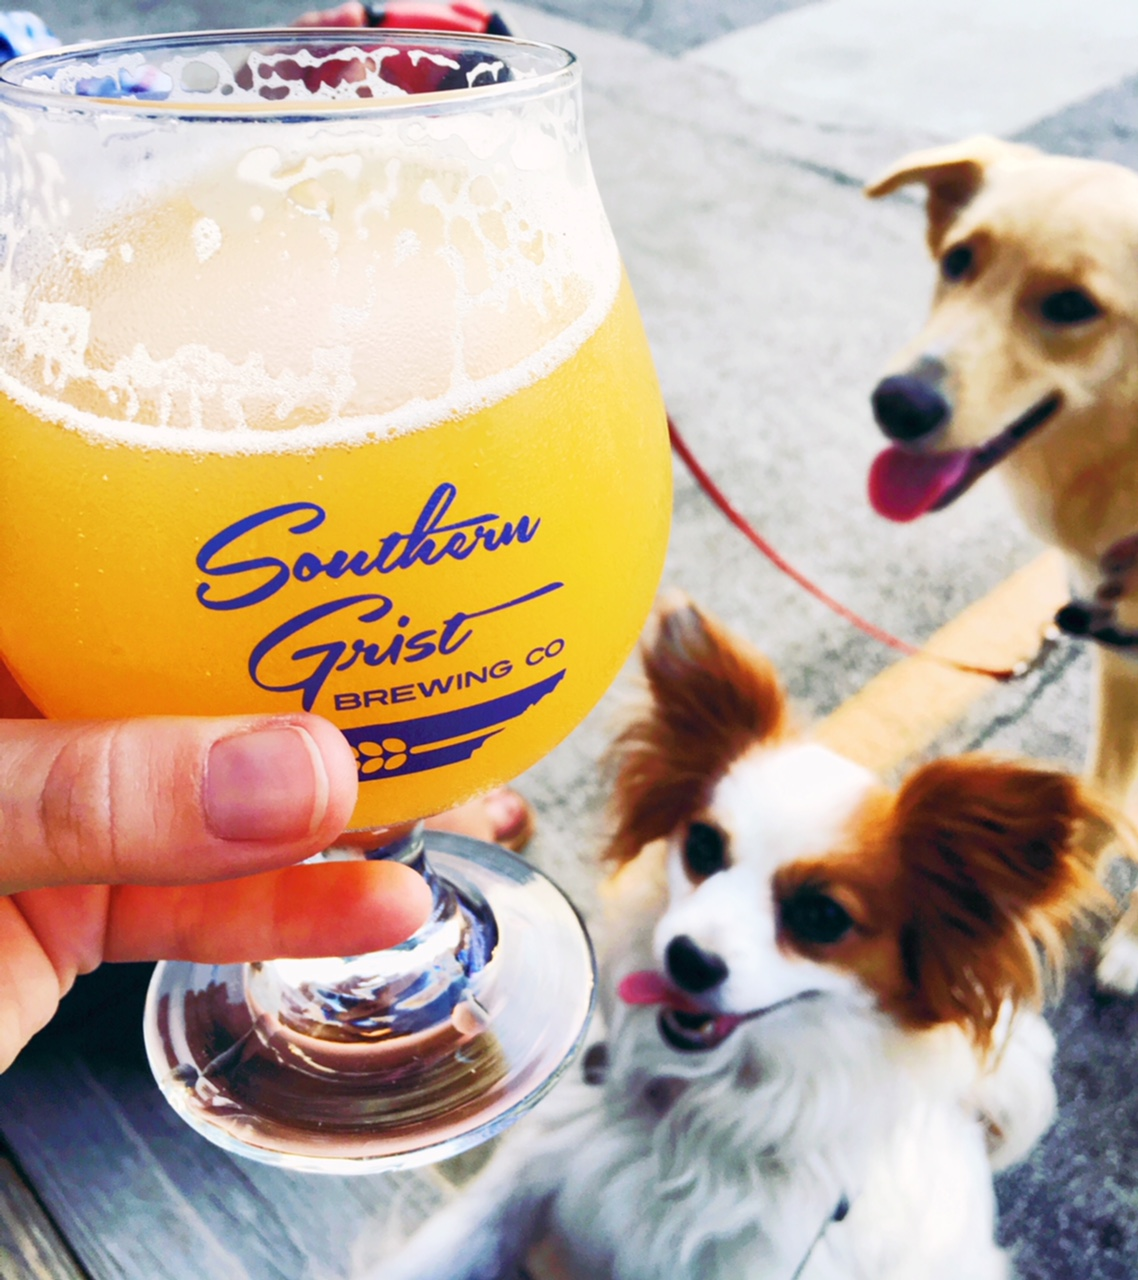 Southern Grist Brewing Co